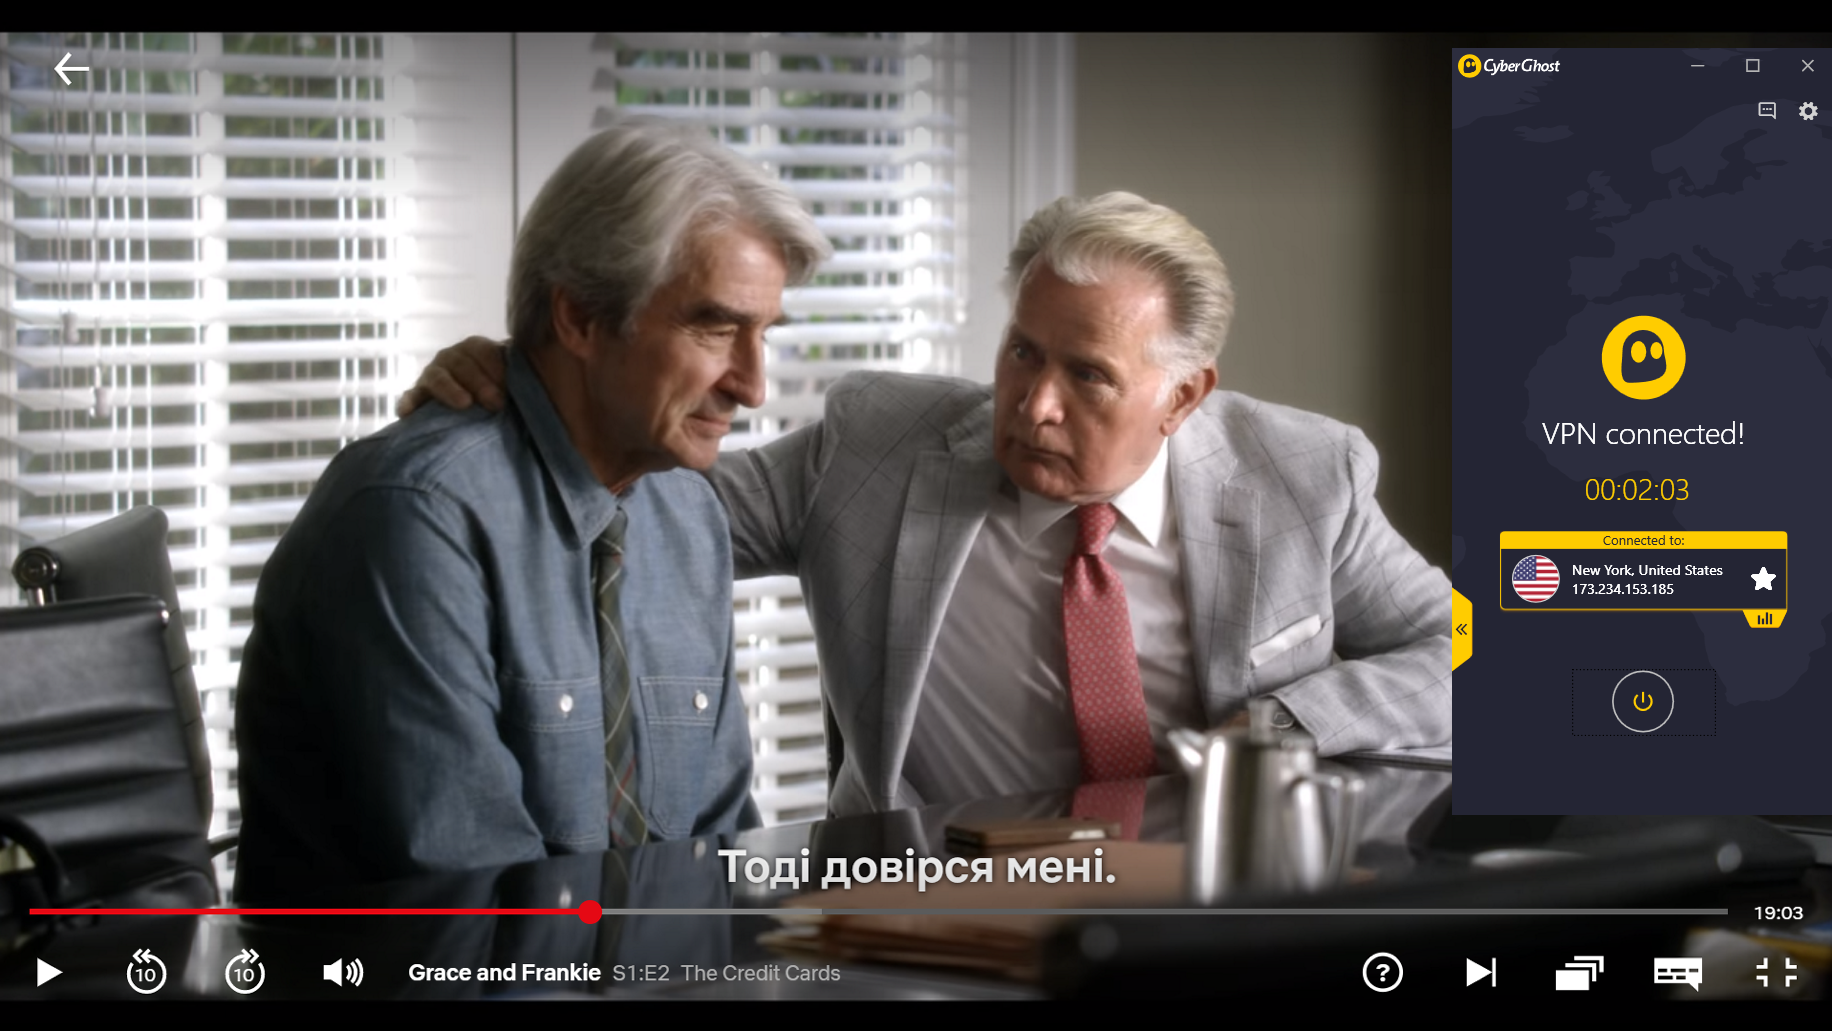 Screenshot of CyberGhost connected to US server with Grace and Frankie streaming on US Netflix